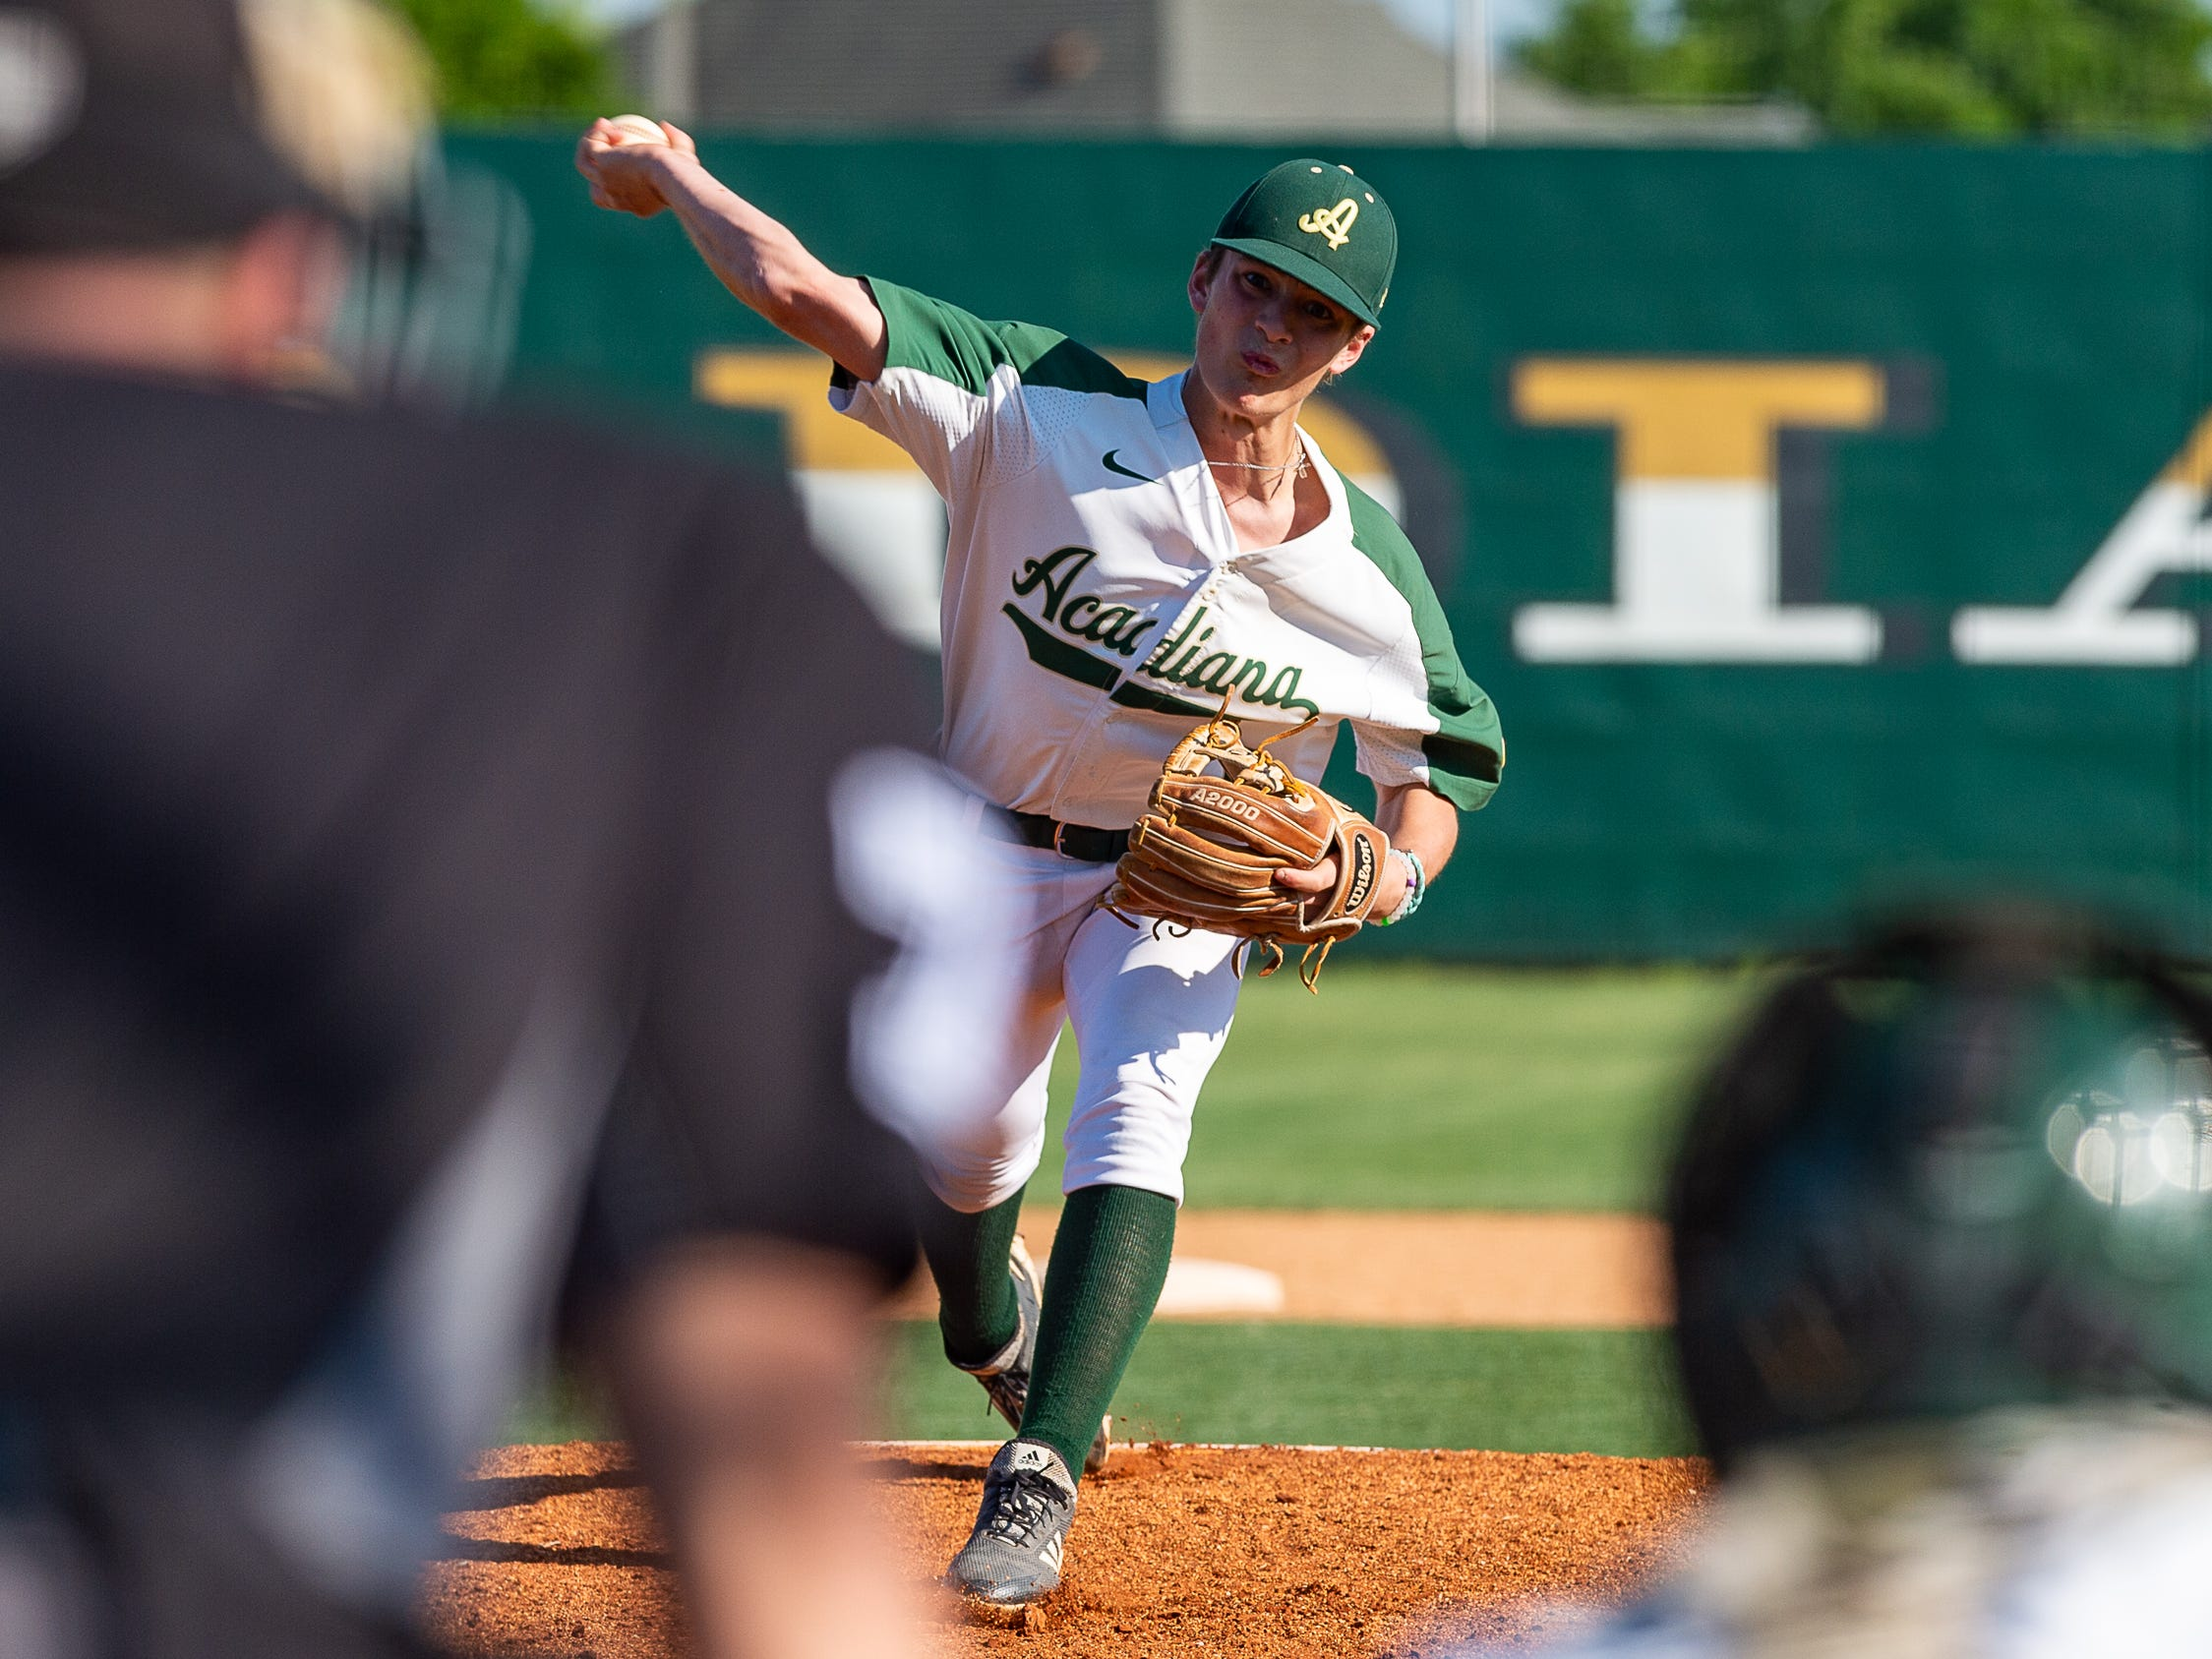 Rams pitcher Landon Guidry on the mound as Acadiana takes on Sam Houston baseball. Tuesday, March 26, 2019.